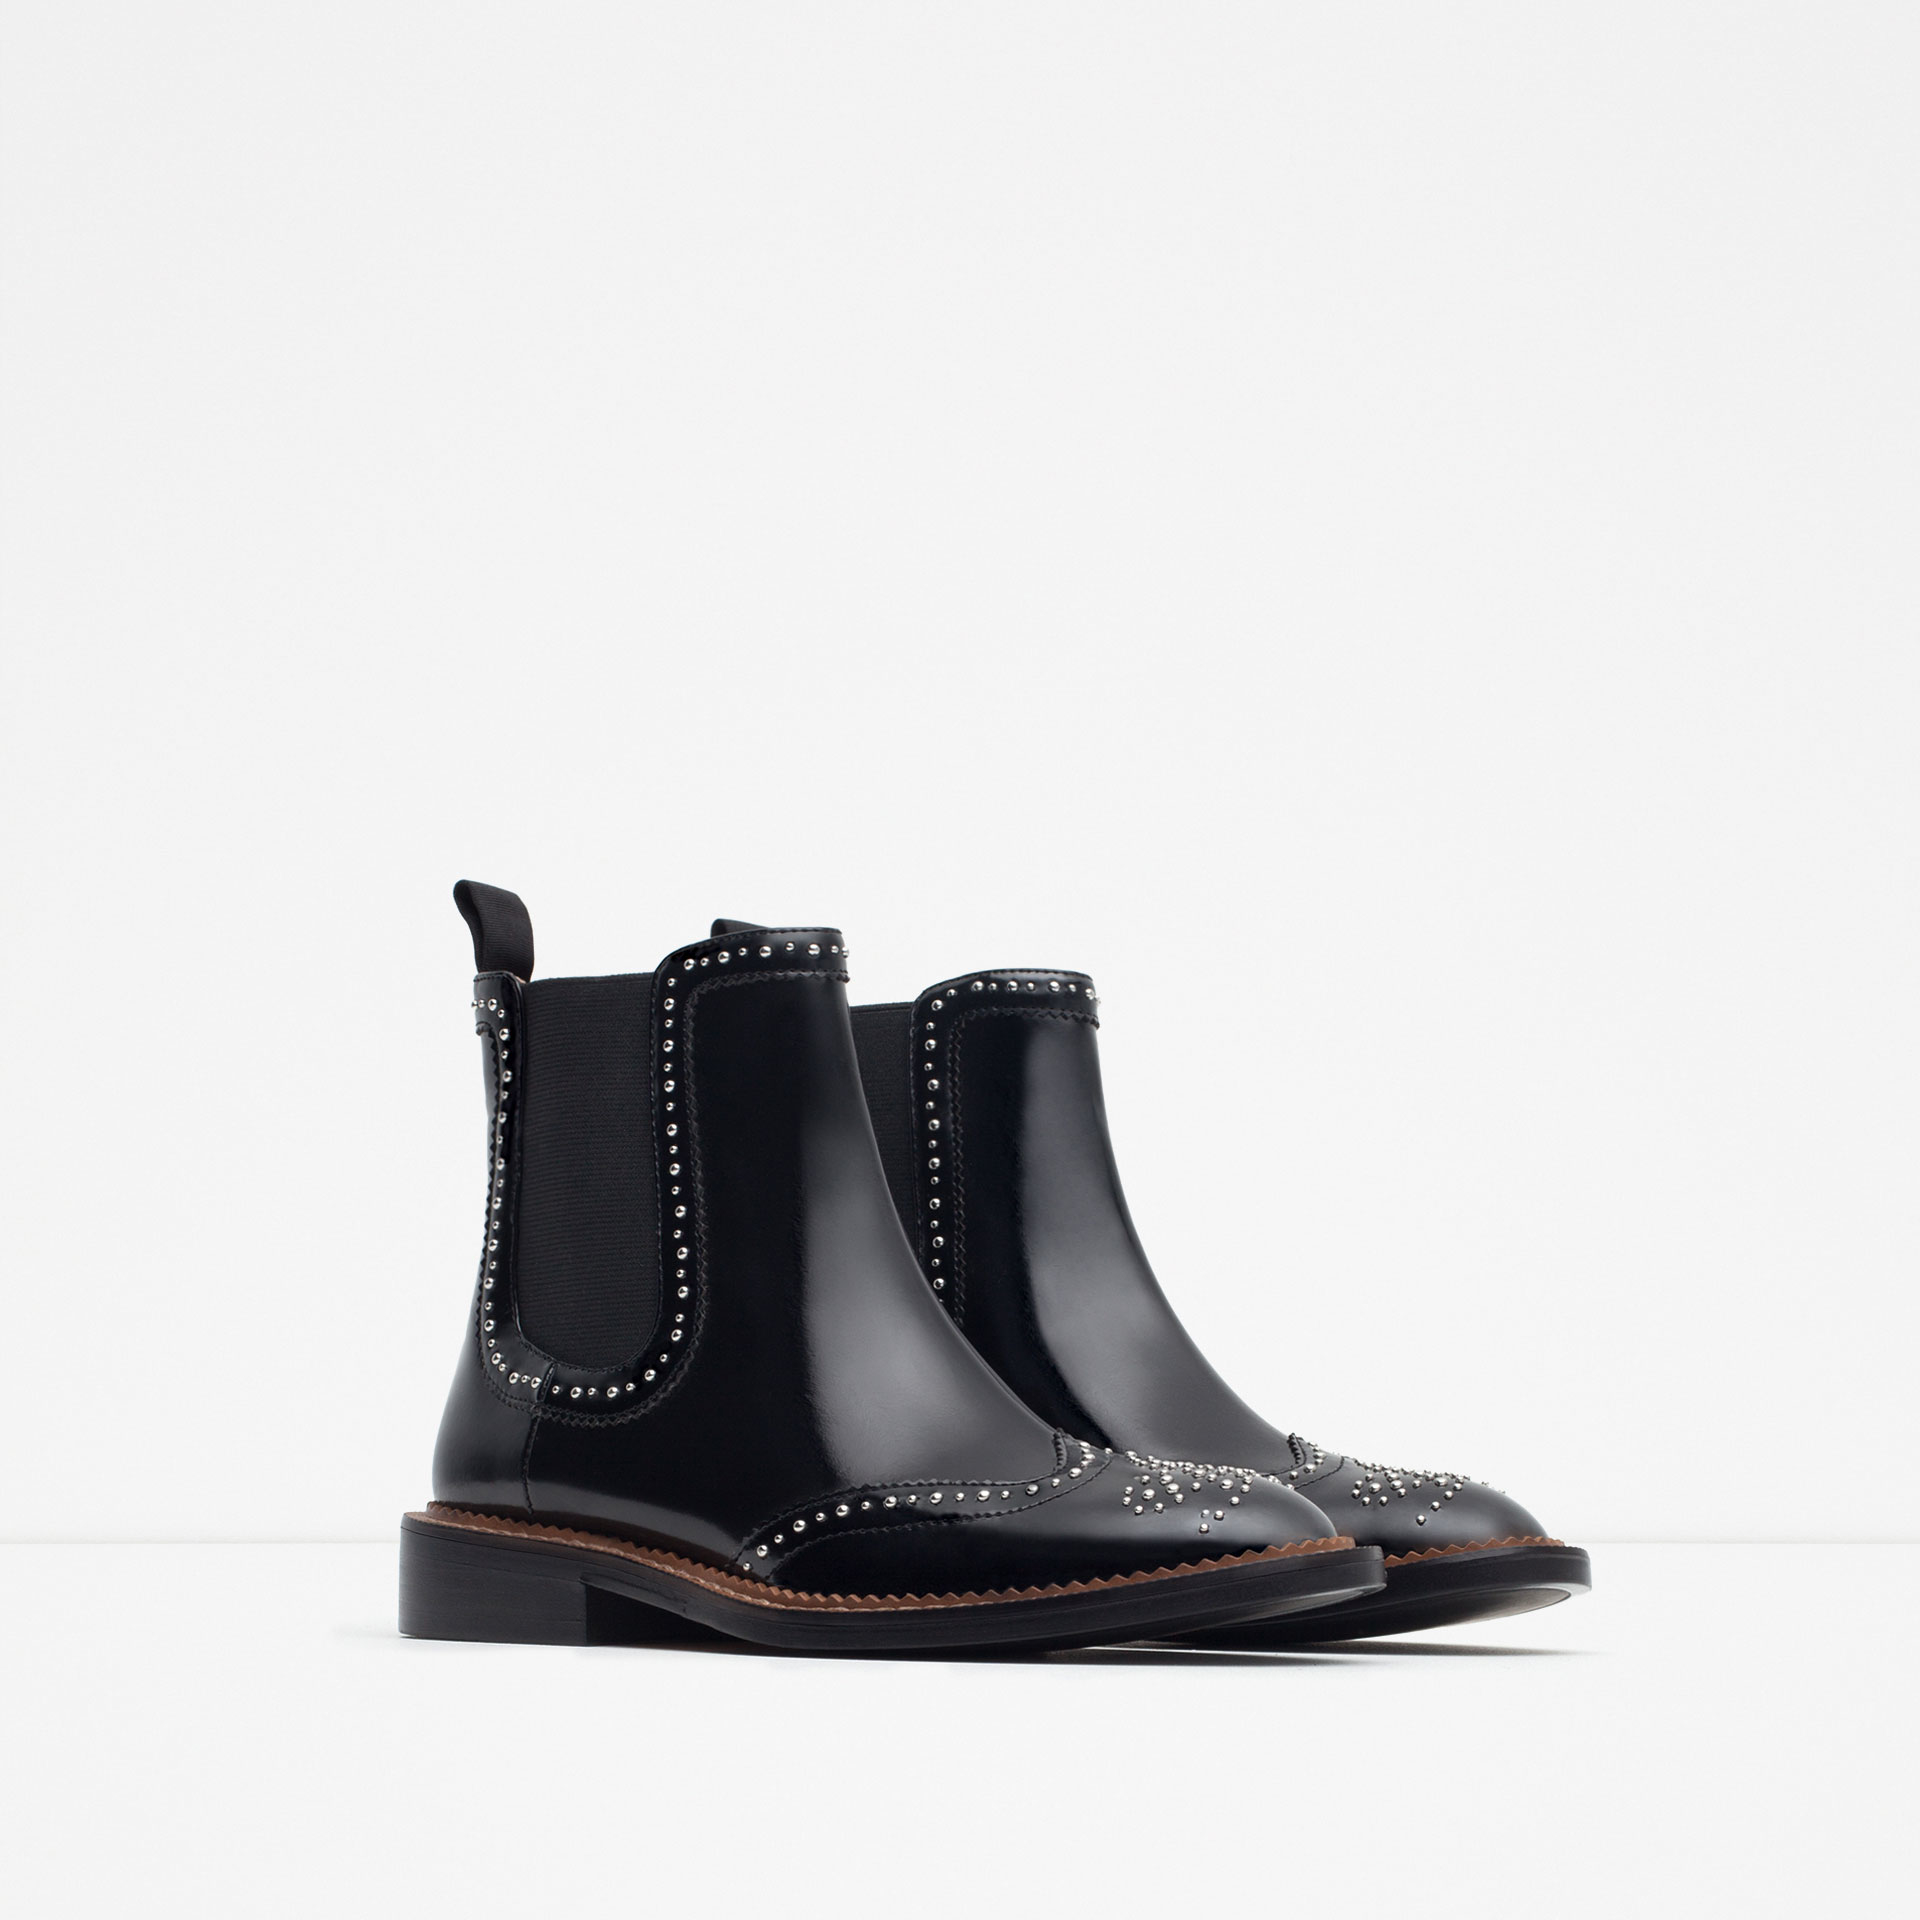 Zara Micro-studded Flat Leather Booties in Black | Lyst Kate Hudson Activewear